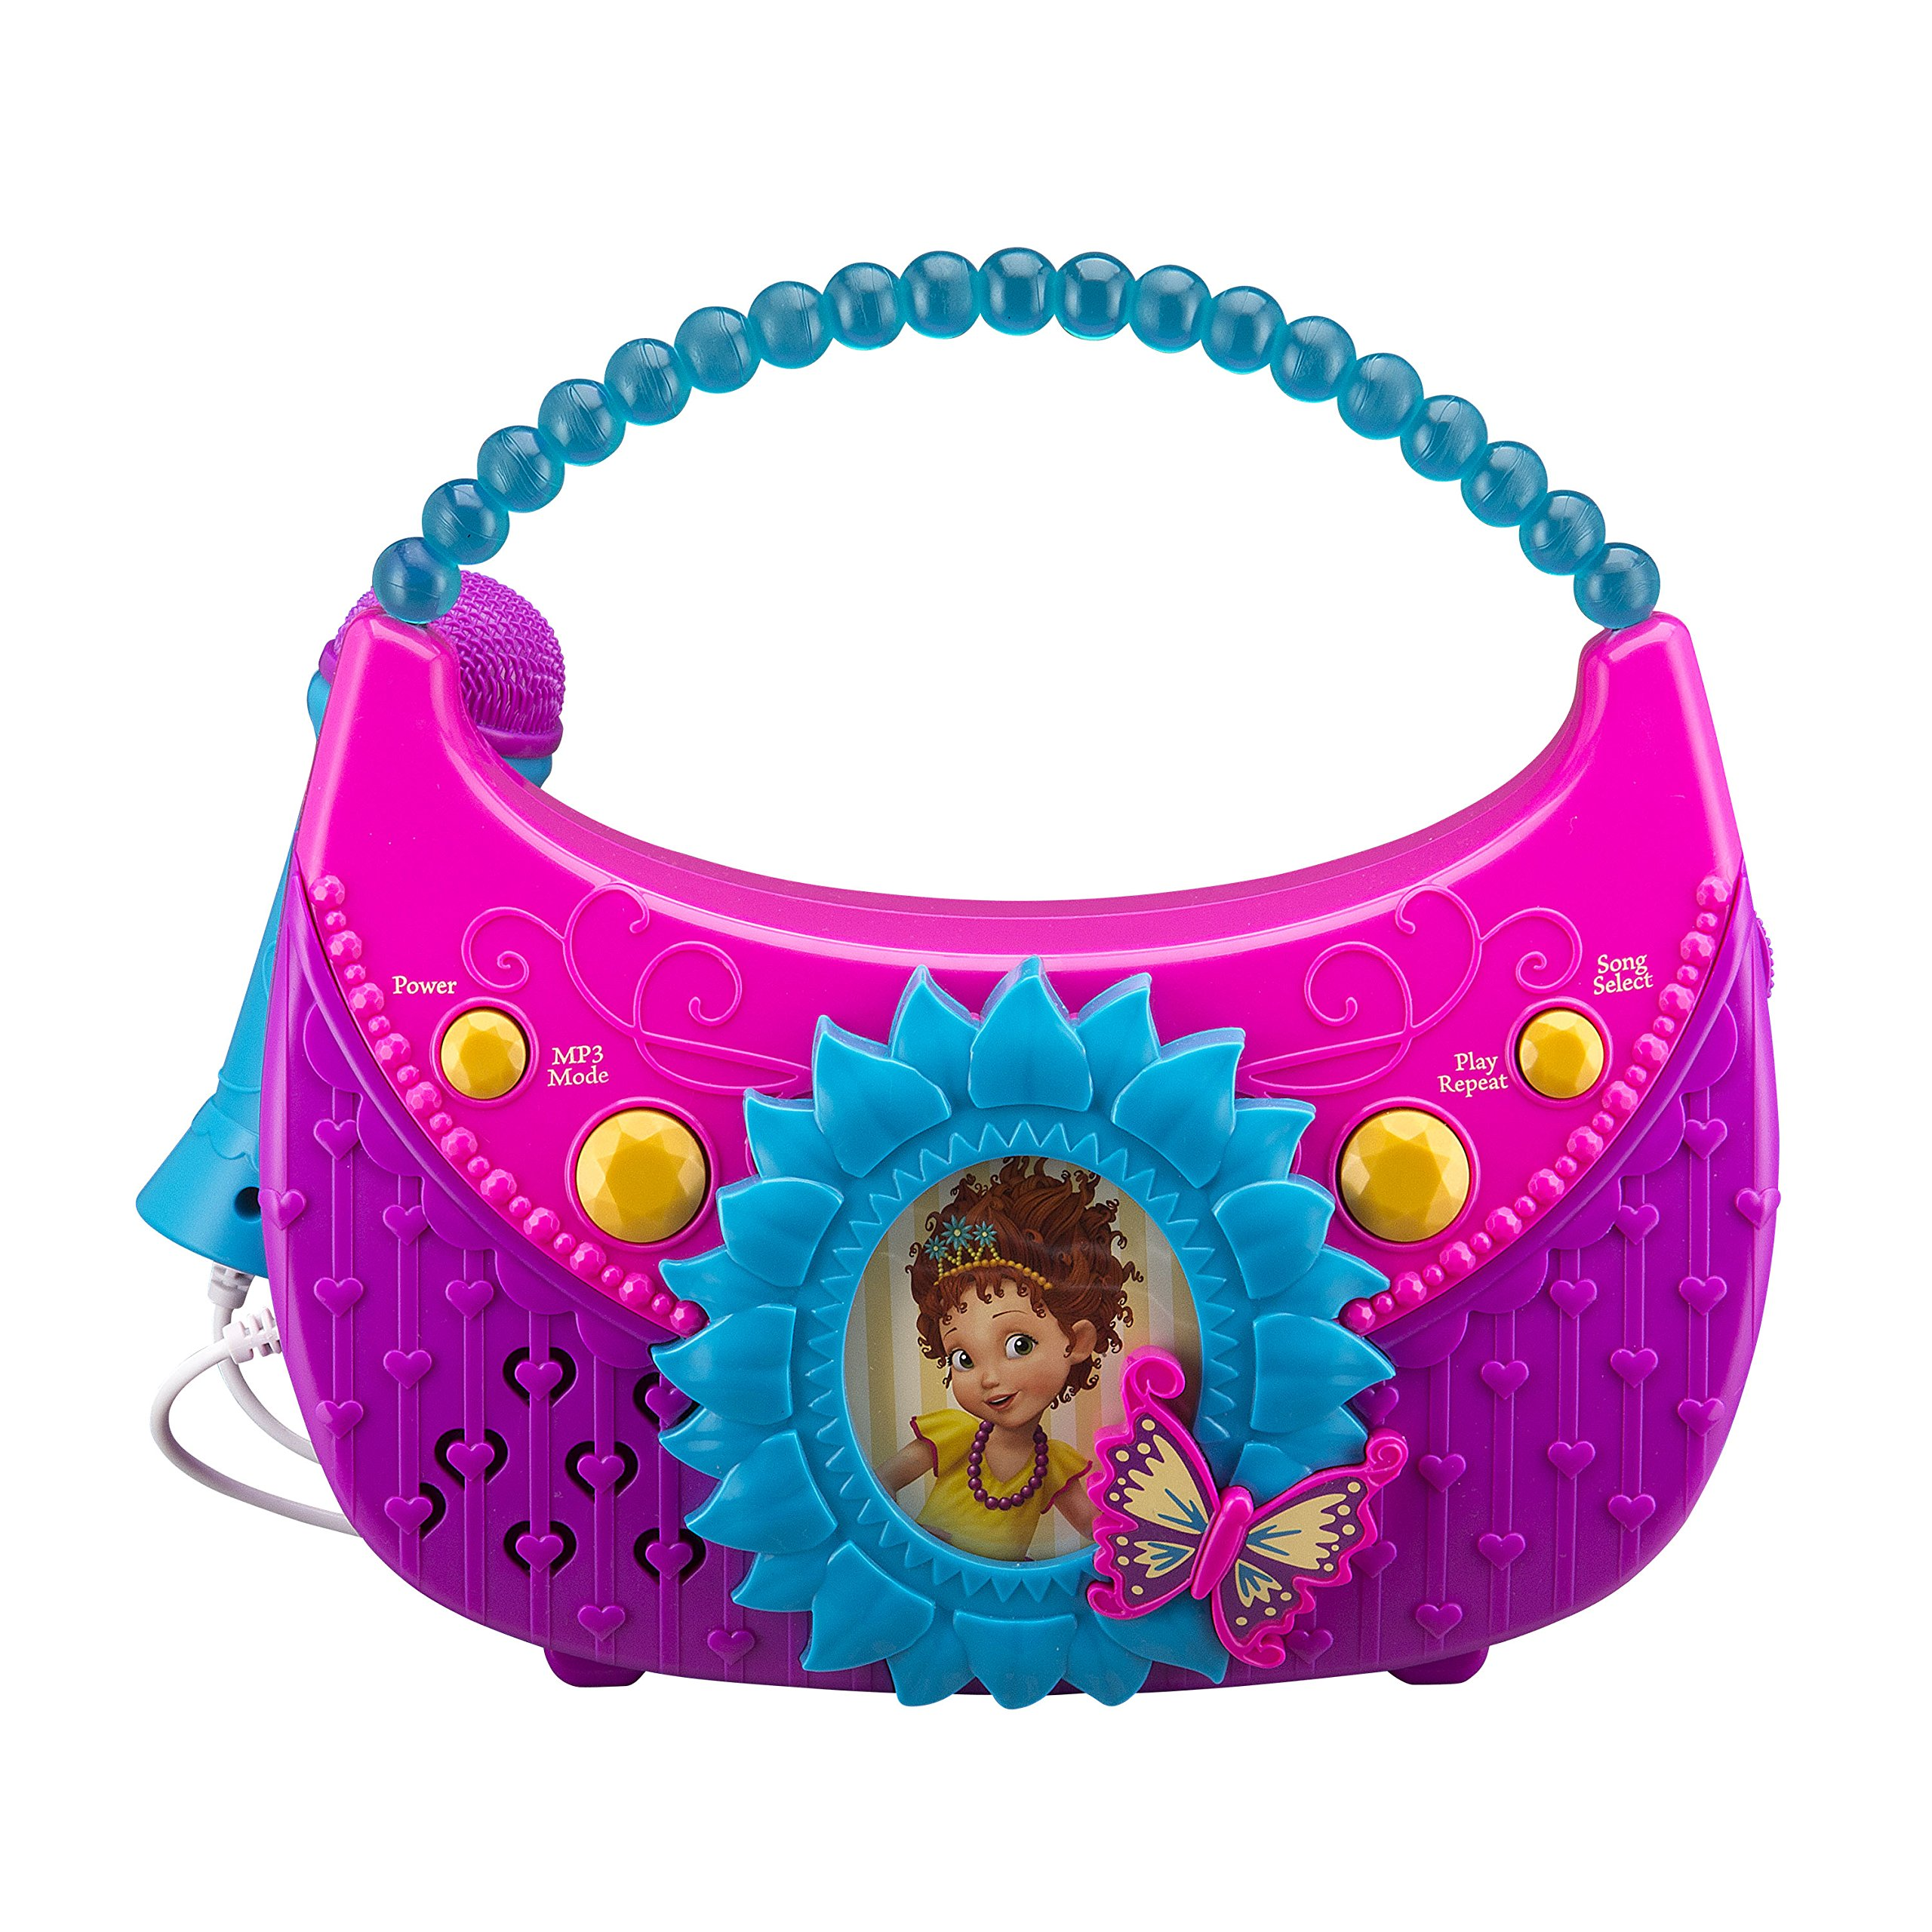 Fancy Nancy Sing Along Boombox with Real Working Microphone Built In Music and Can Connect to MP3 Player by eKids